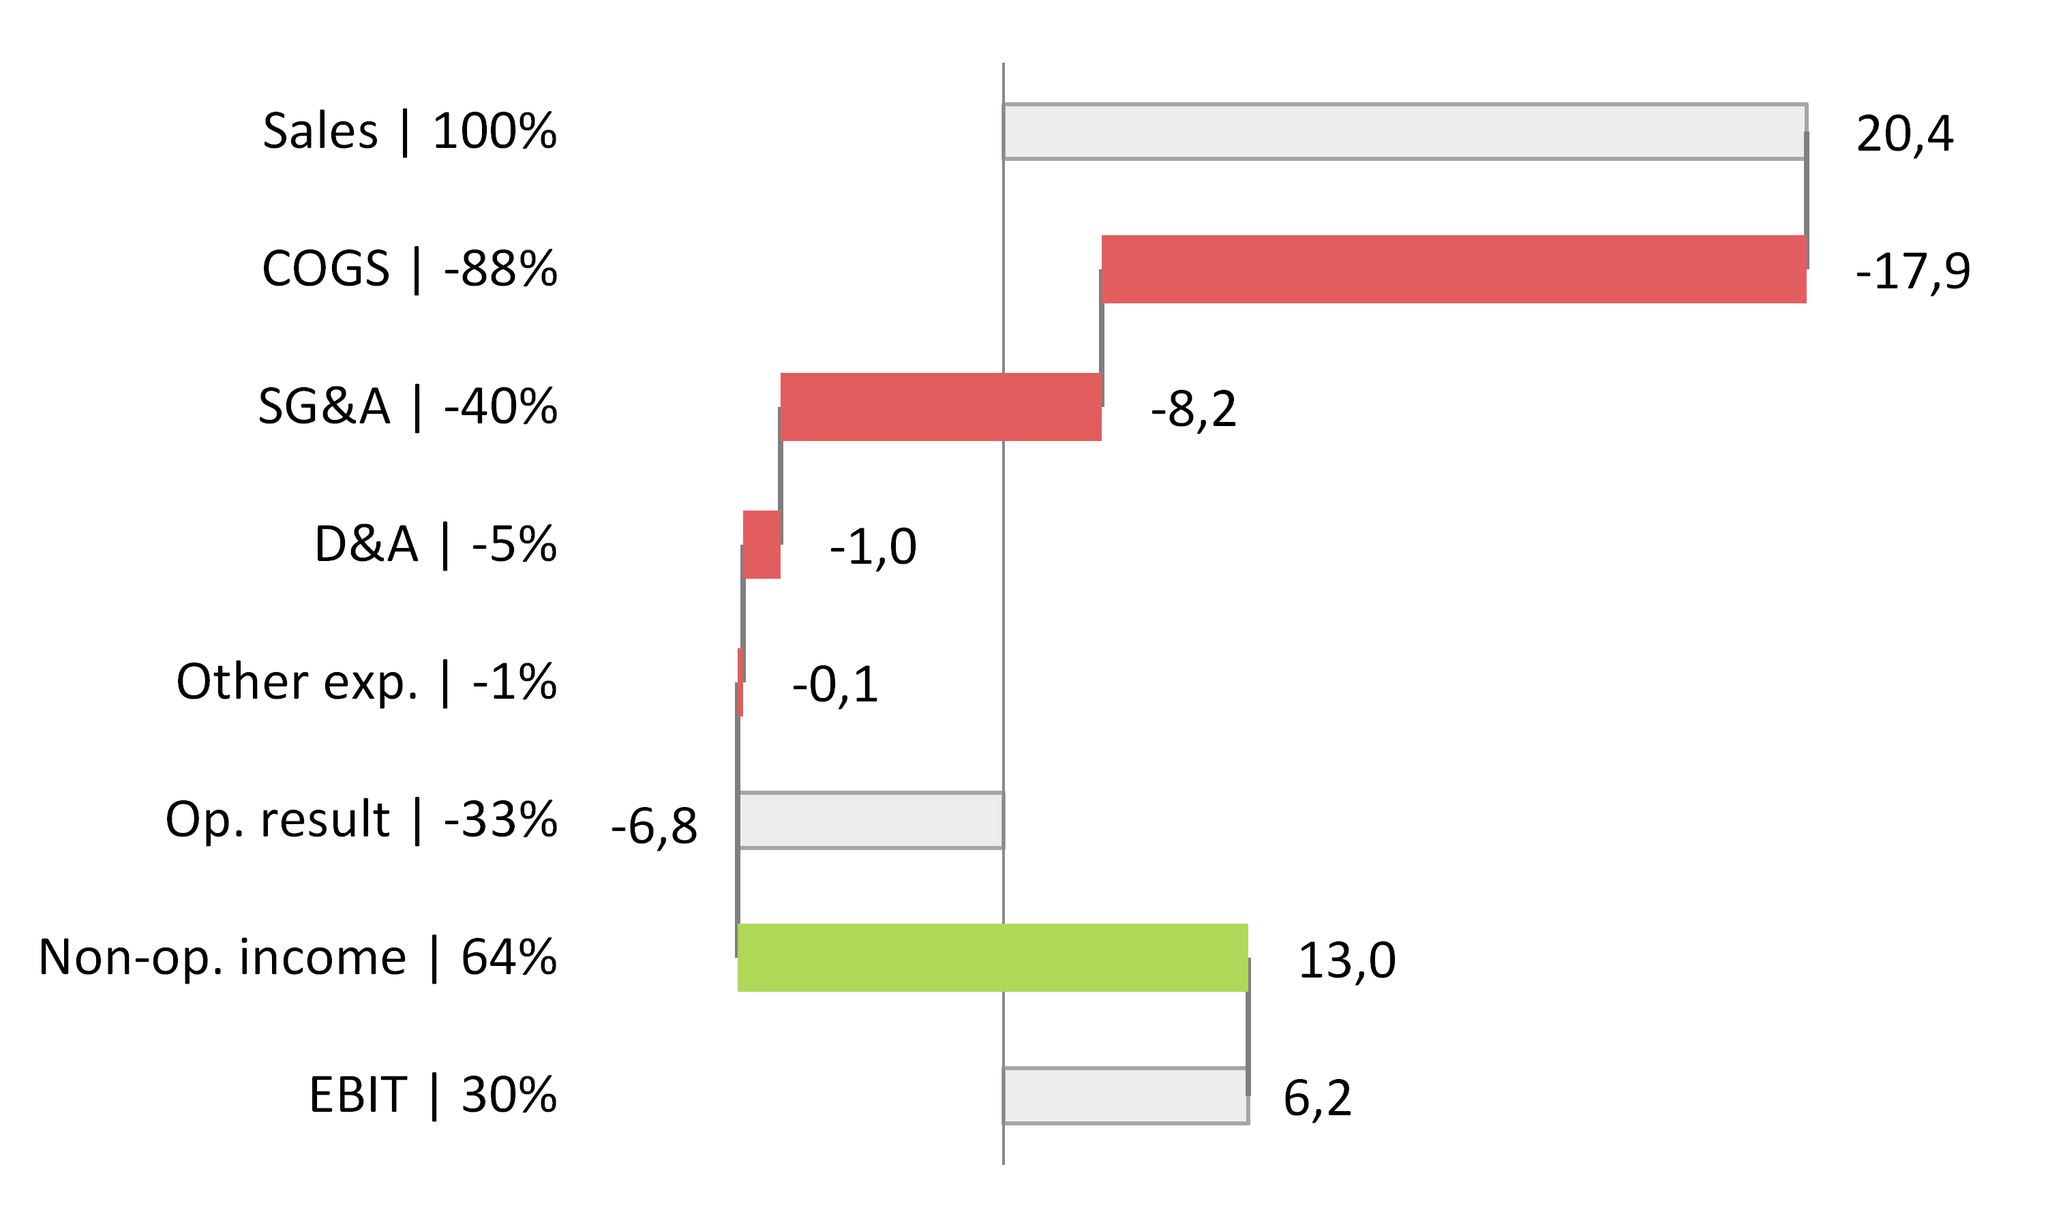 Rotated waterfall chart cross y-axis